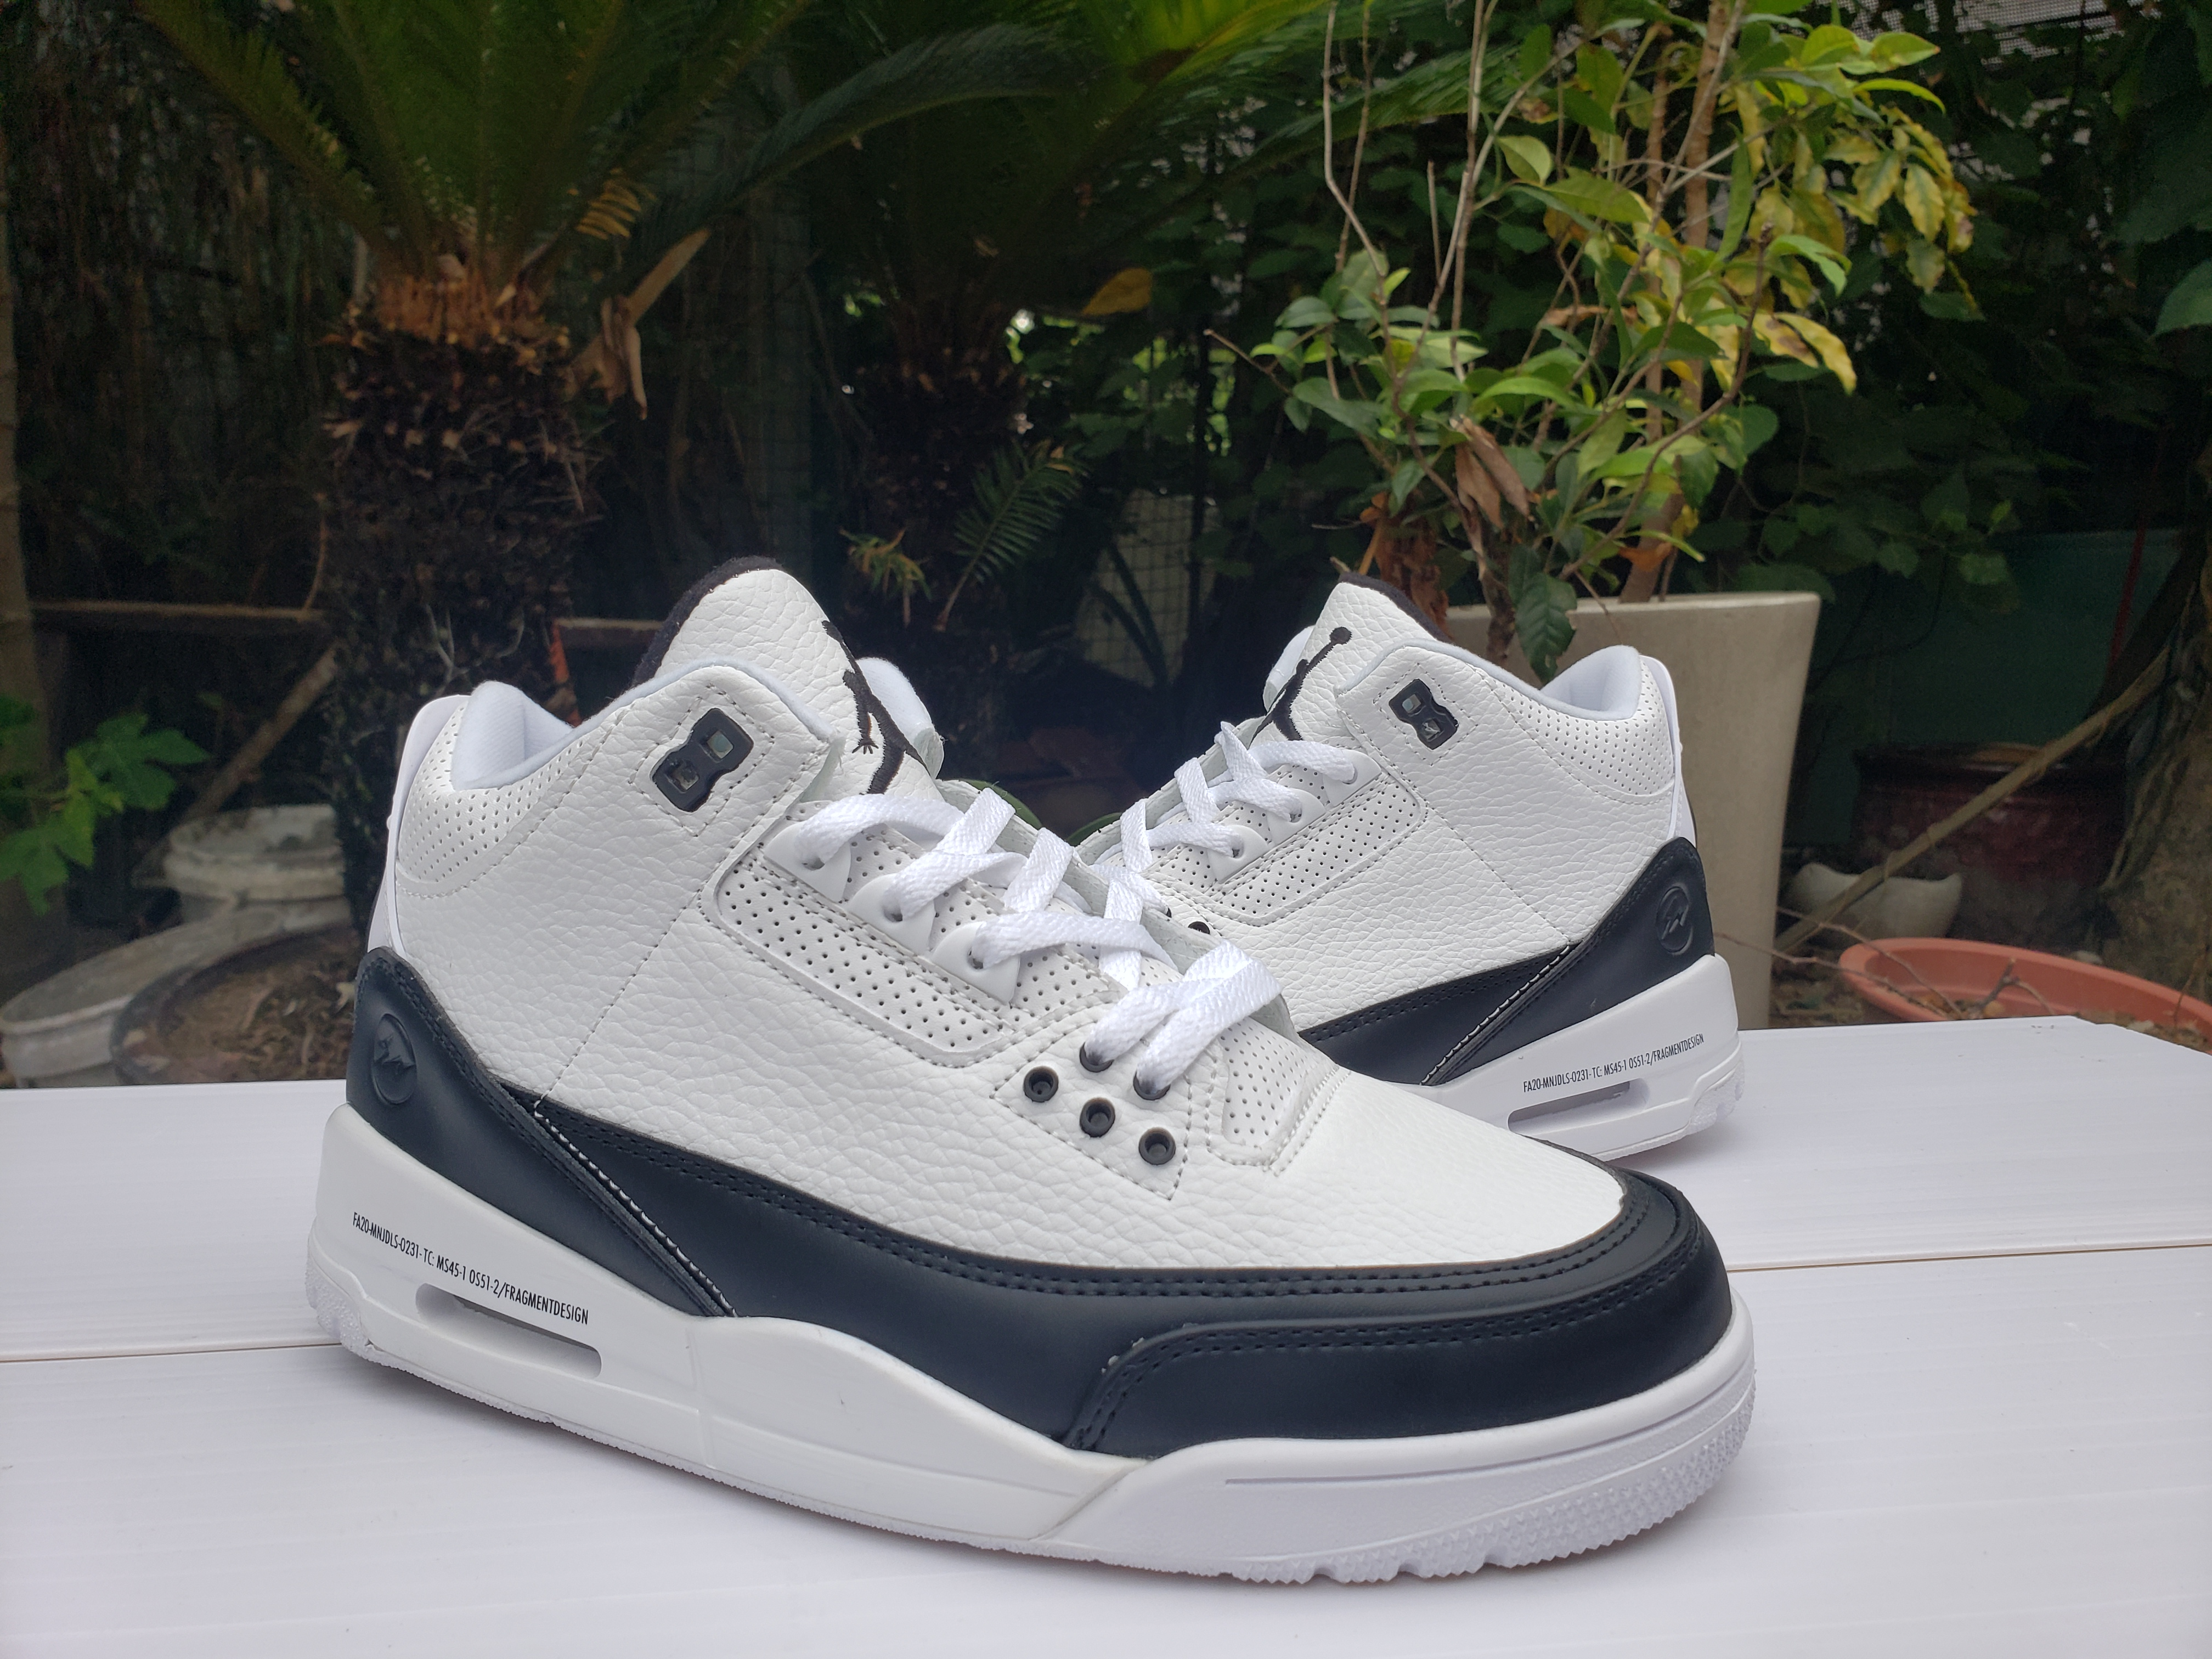 2020 Air Jordan 3 Retro White Black Shoes